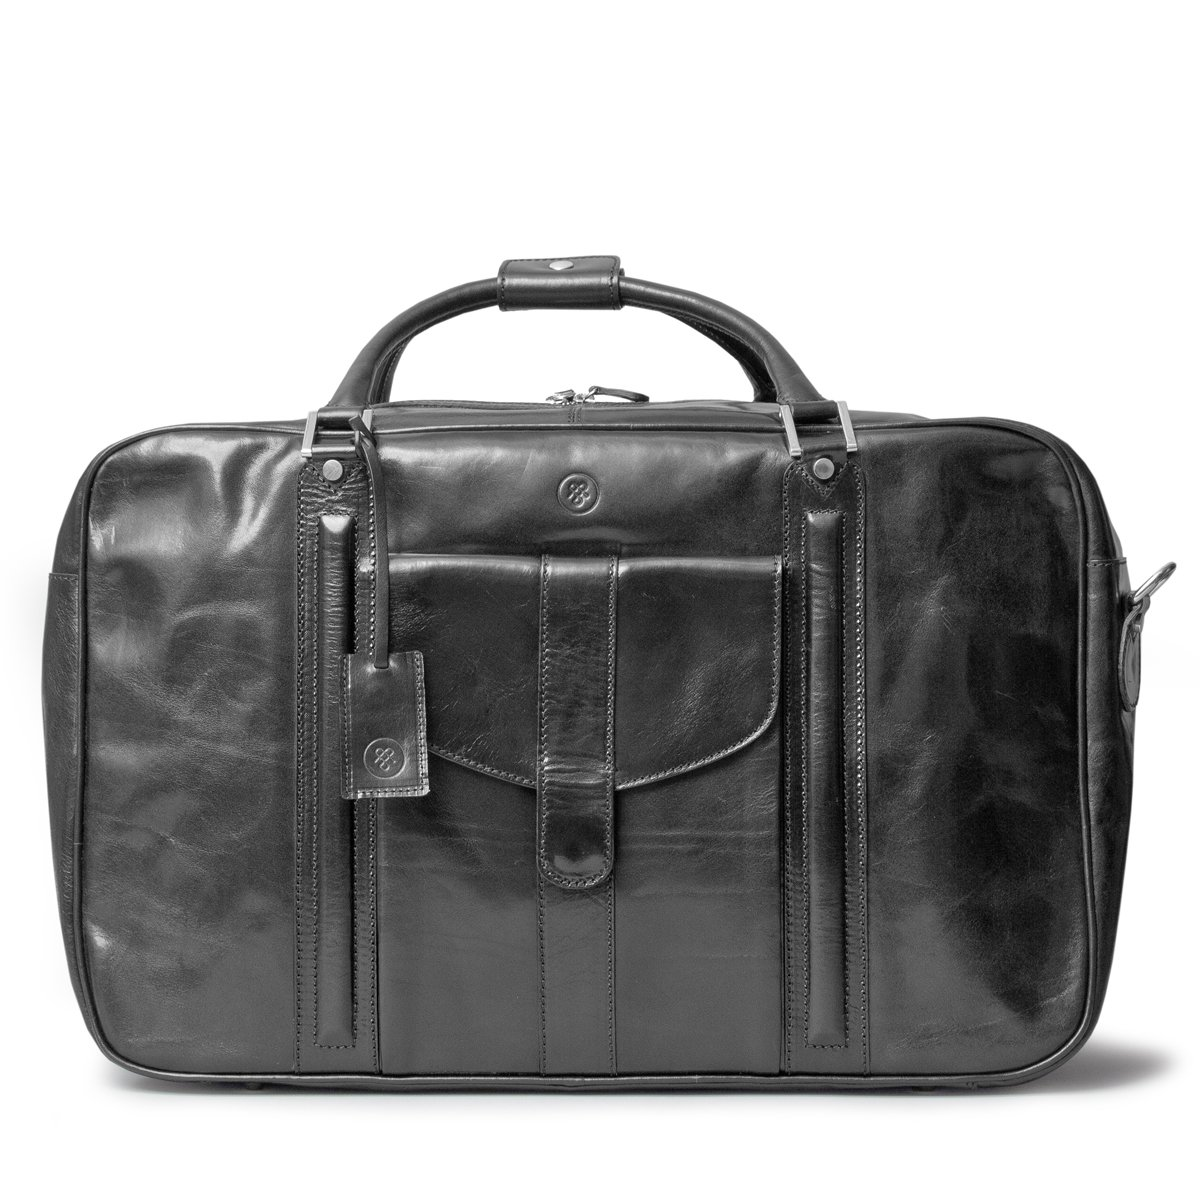 Maxwell Scott Luxury Black Leather Suitcase Bag for Men (The Maurizio)